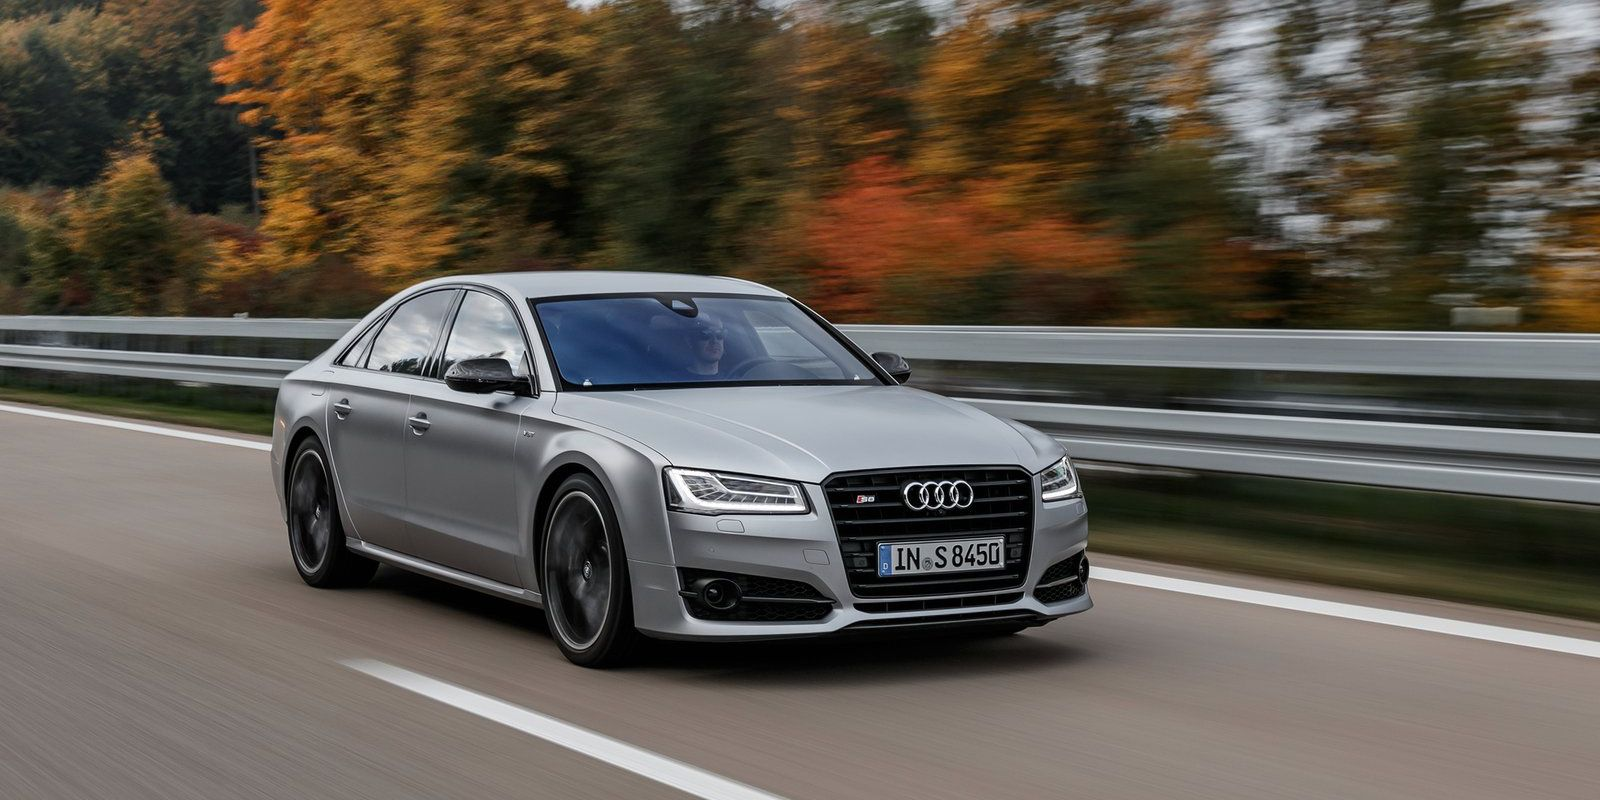 Audi S8 W12 Turbo >> 10 Fastest Sedans You Can Buy Today - Most Powerful Sedans in 2017